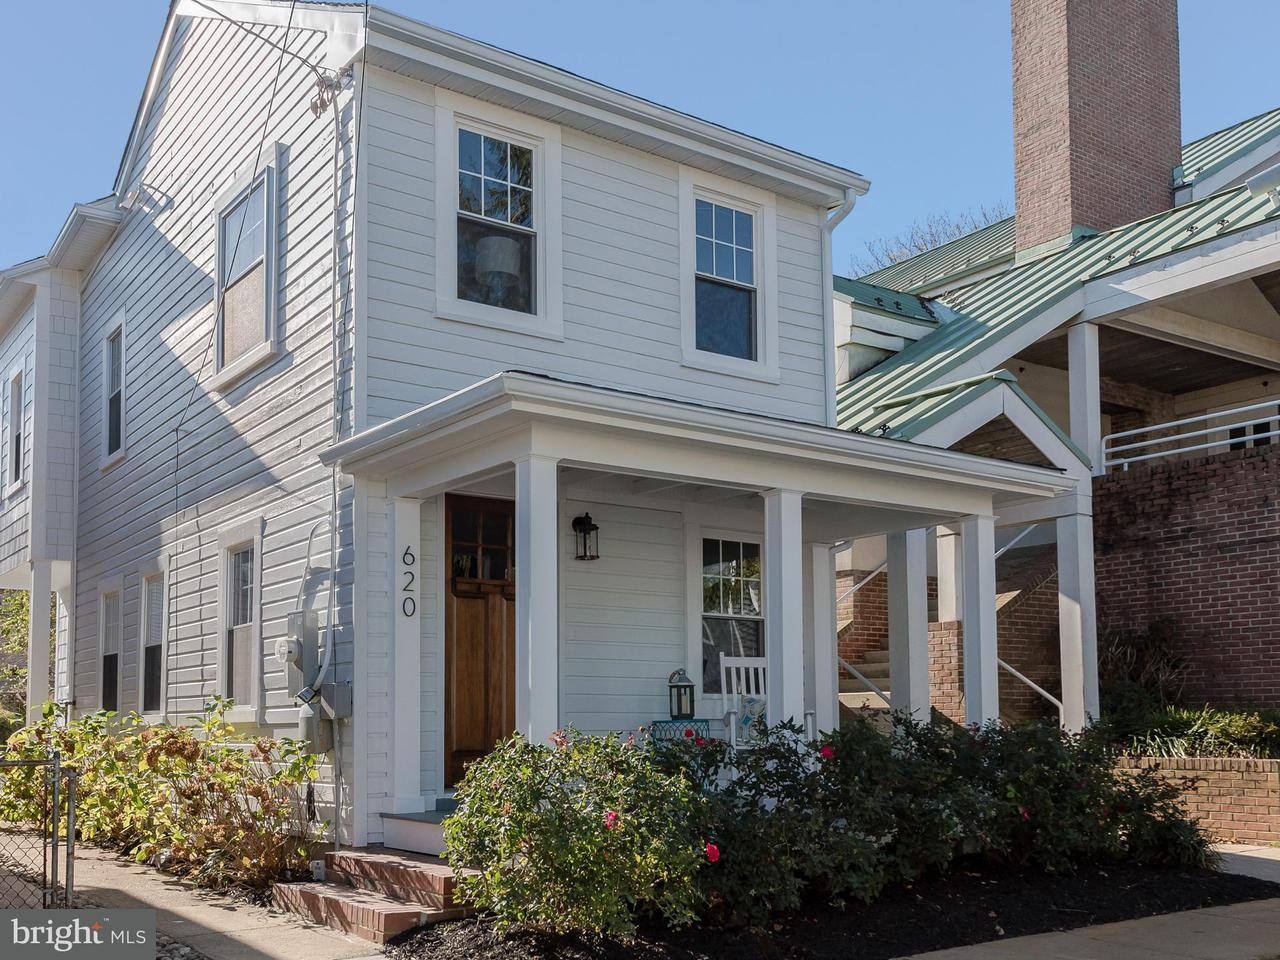 Single Family Home for Sale at 620 SECOND Street 620 SECOND Street Annapolis, Maryland 21403 United States